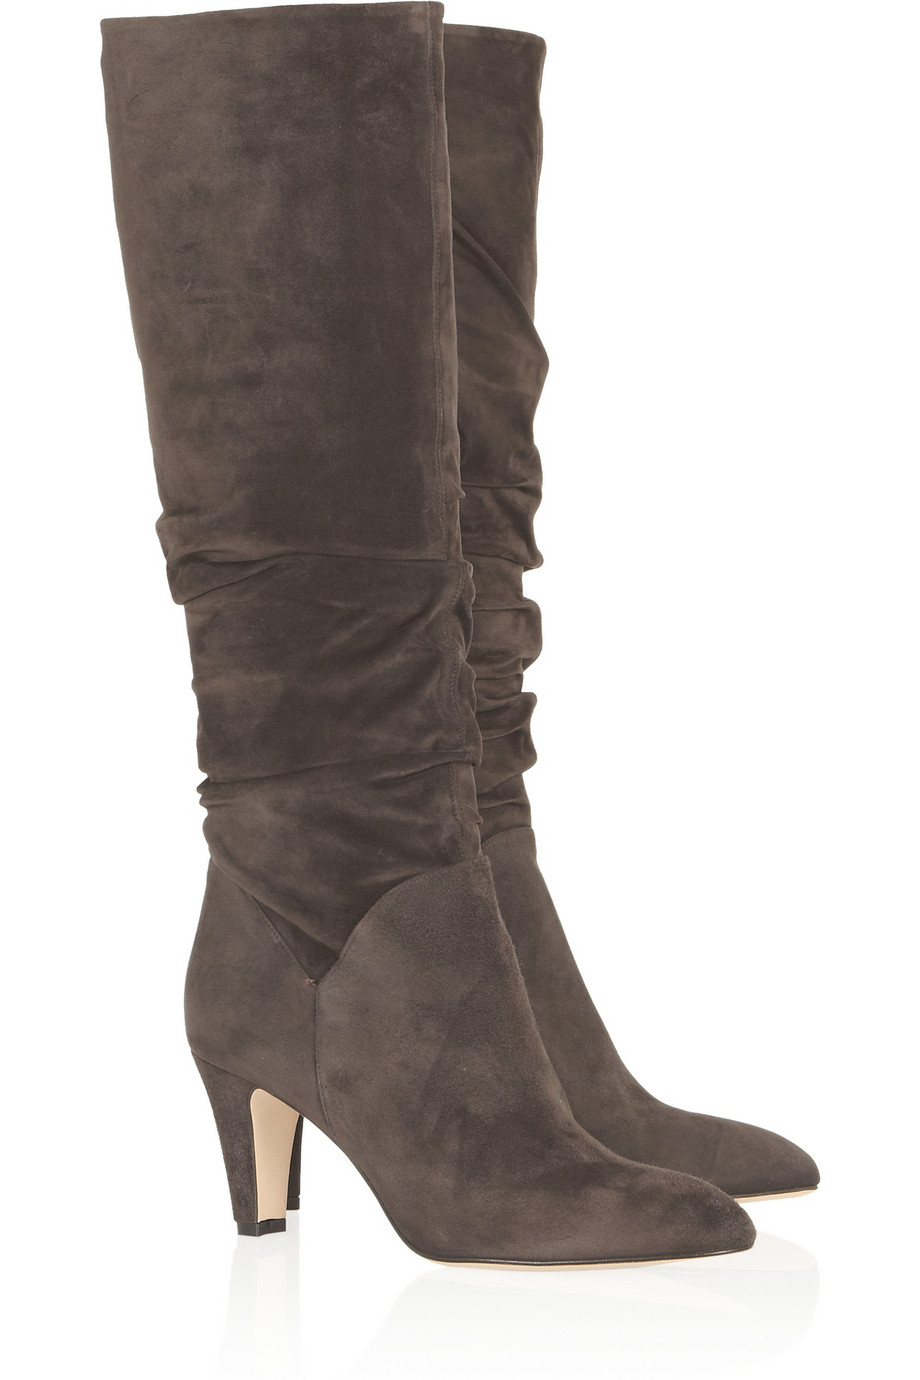 brian atwood berton ruched suede knee boots in gray lyst